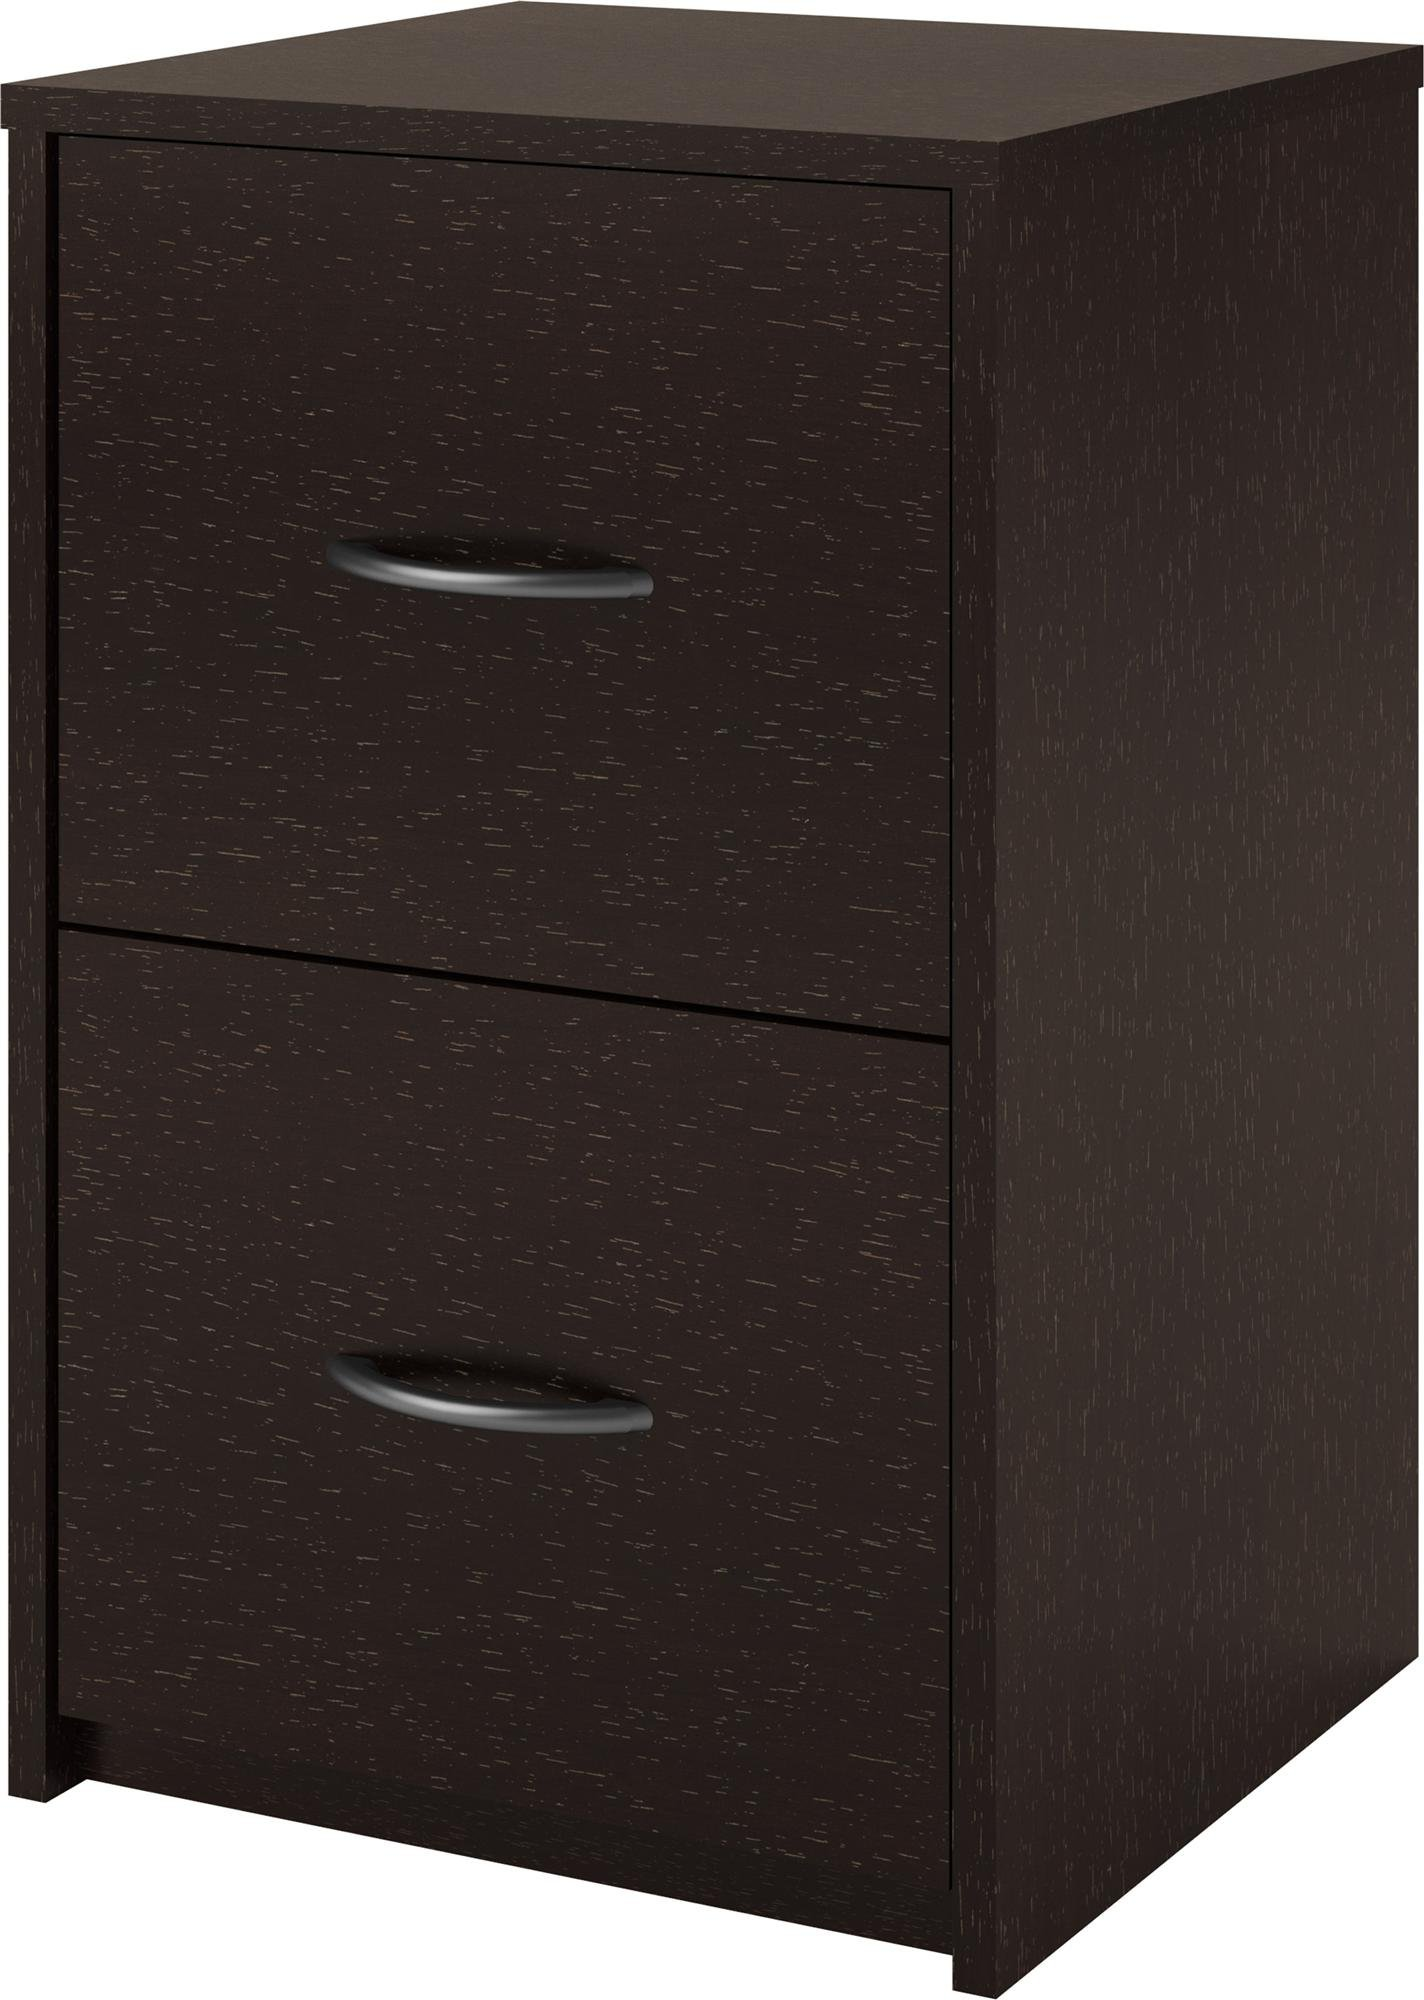 Ameriwood Home Core 2 Drawer File Cabinet, Espresso by Ameriwood Home